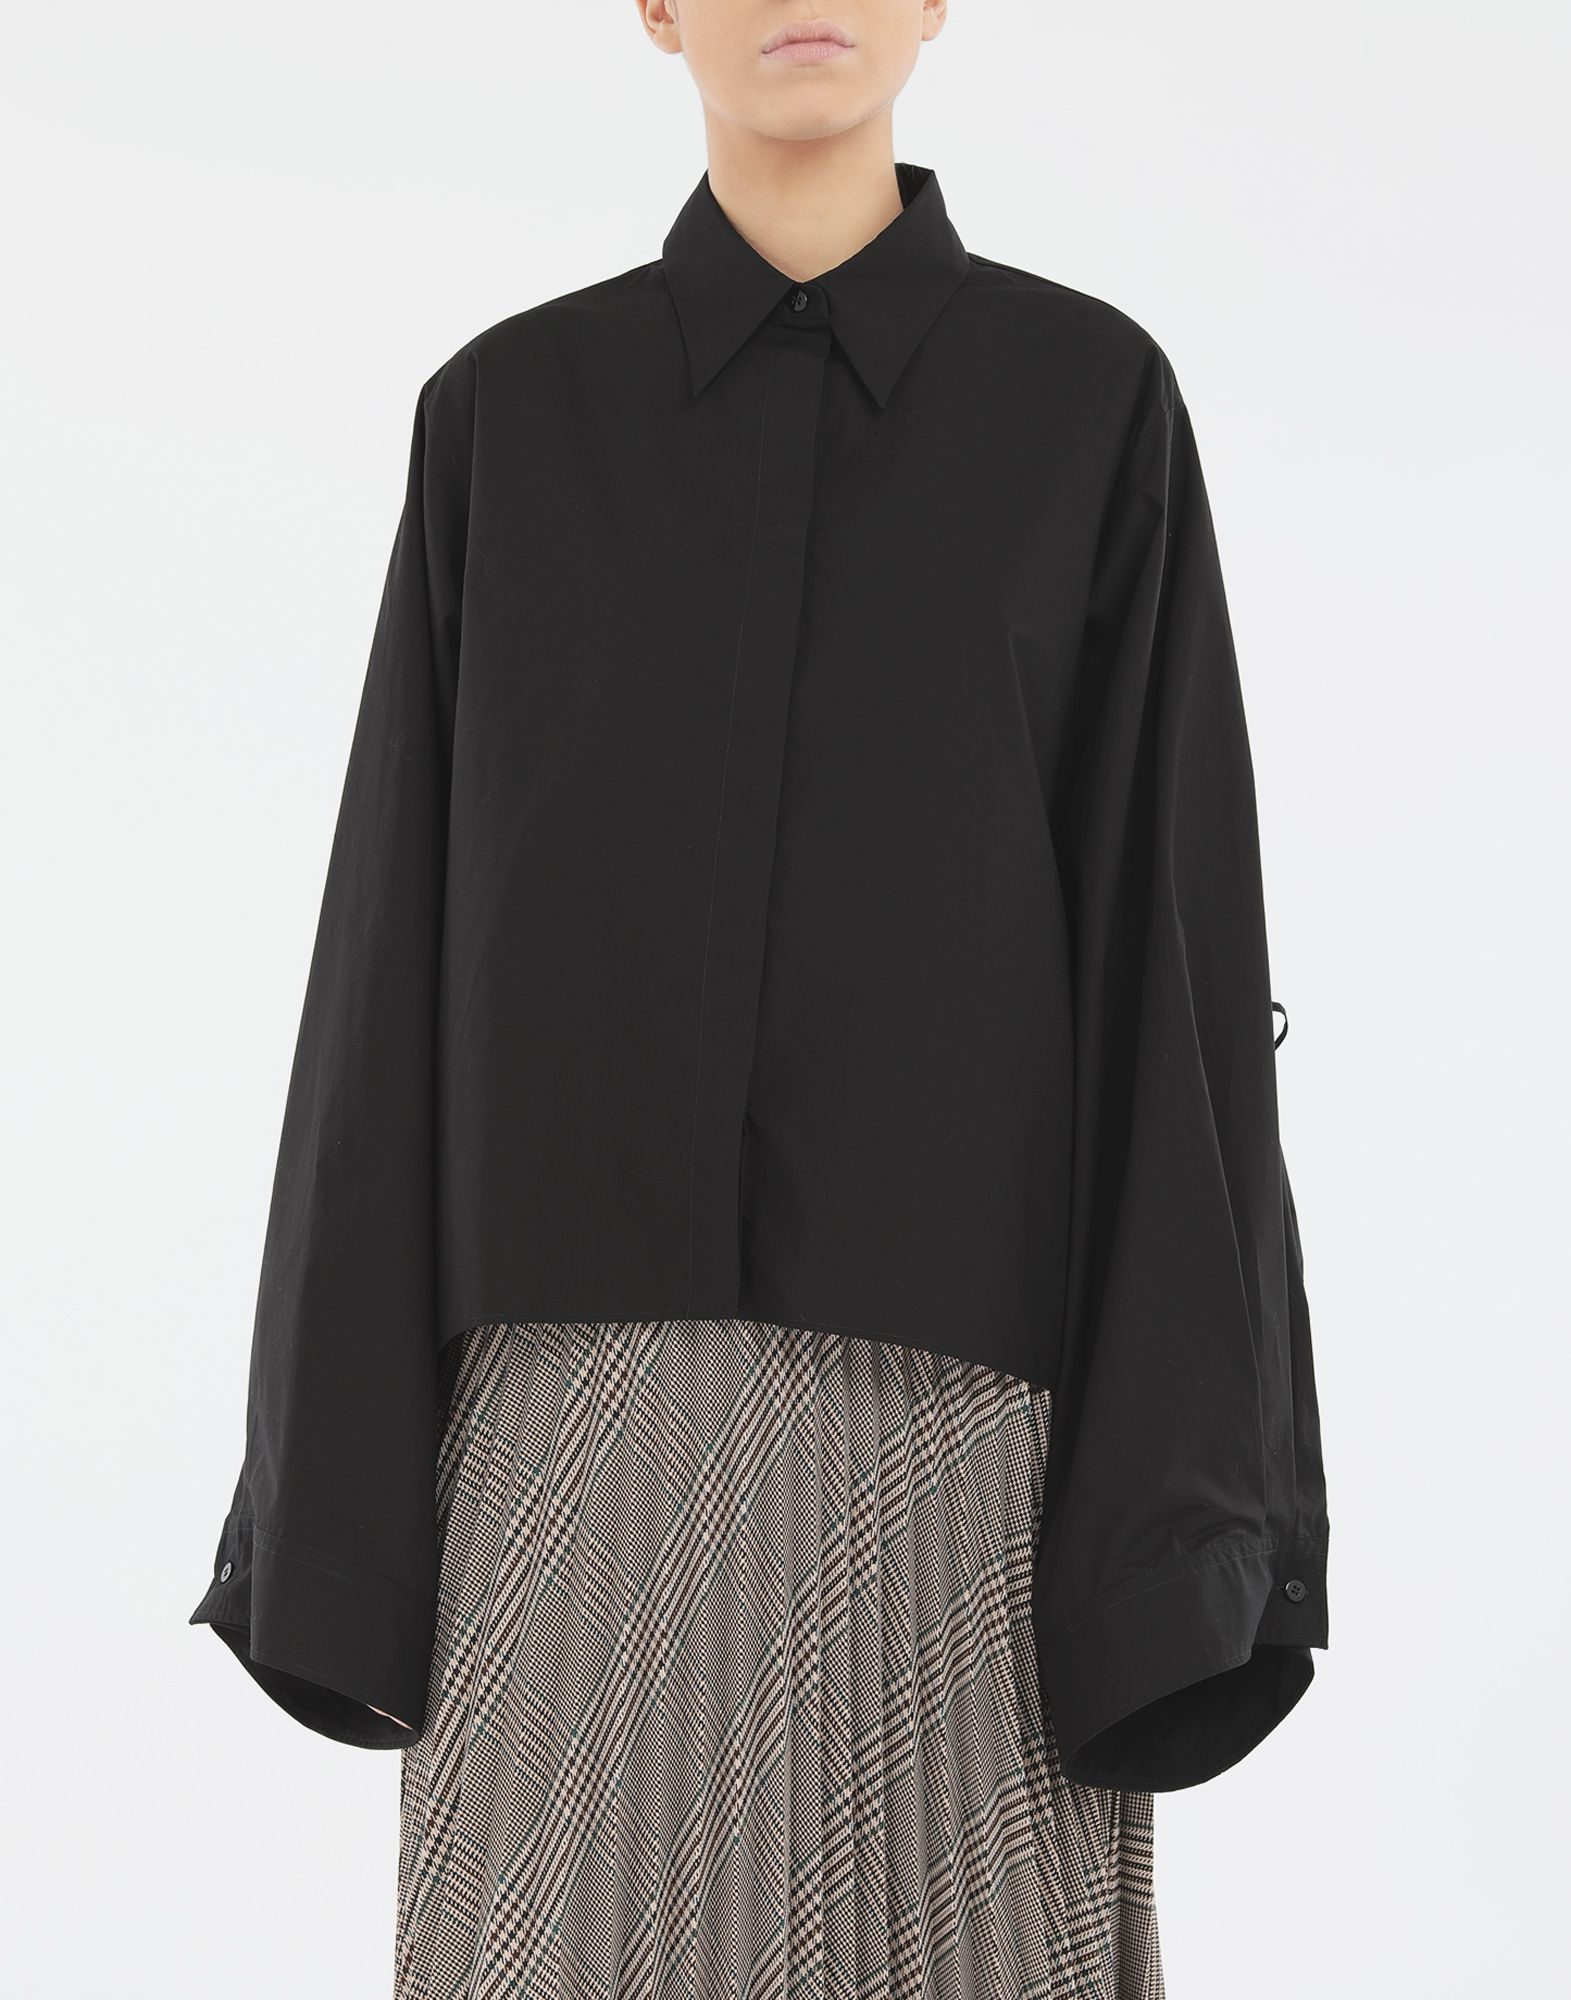 MM6 MAISON MARGIELA Shirt with strings Long sleeve shirt Woman r